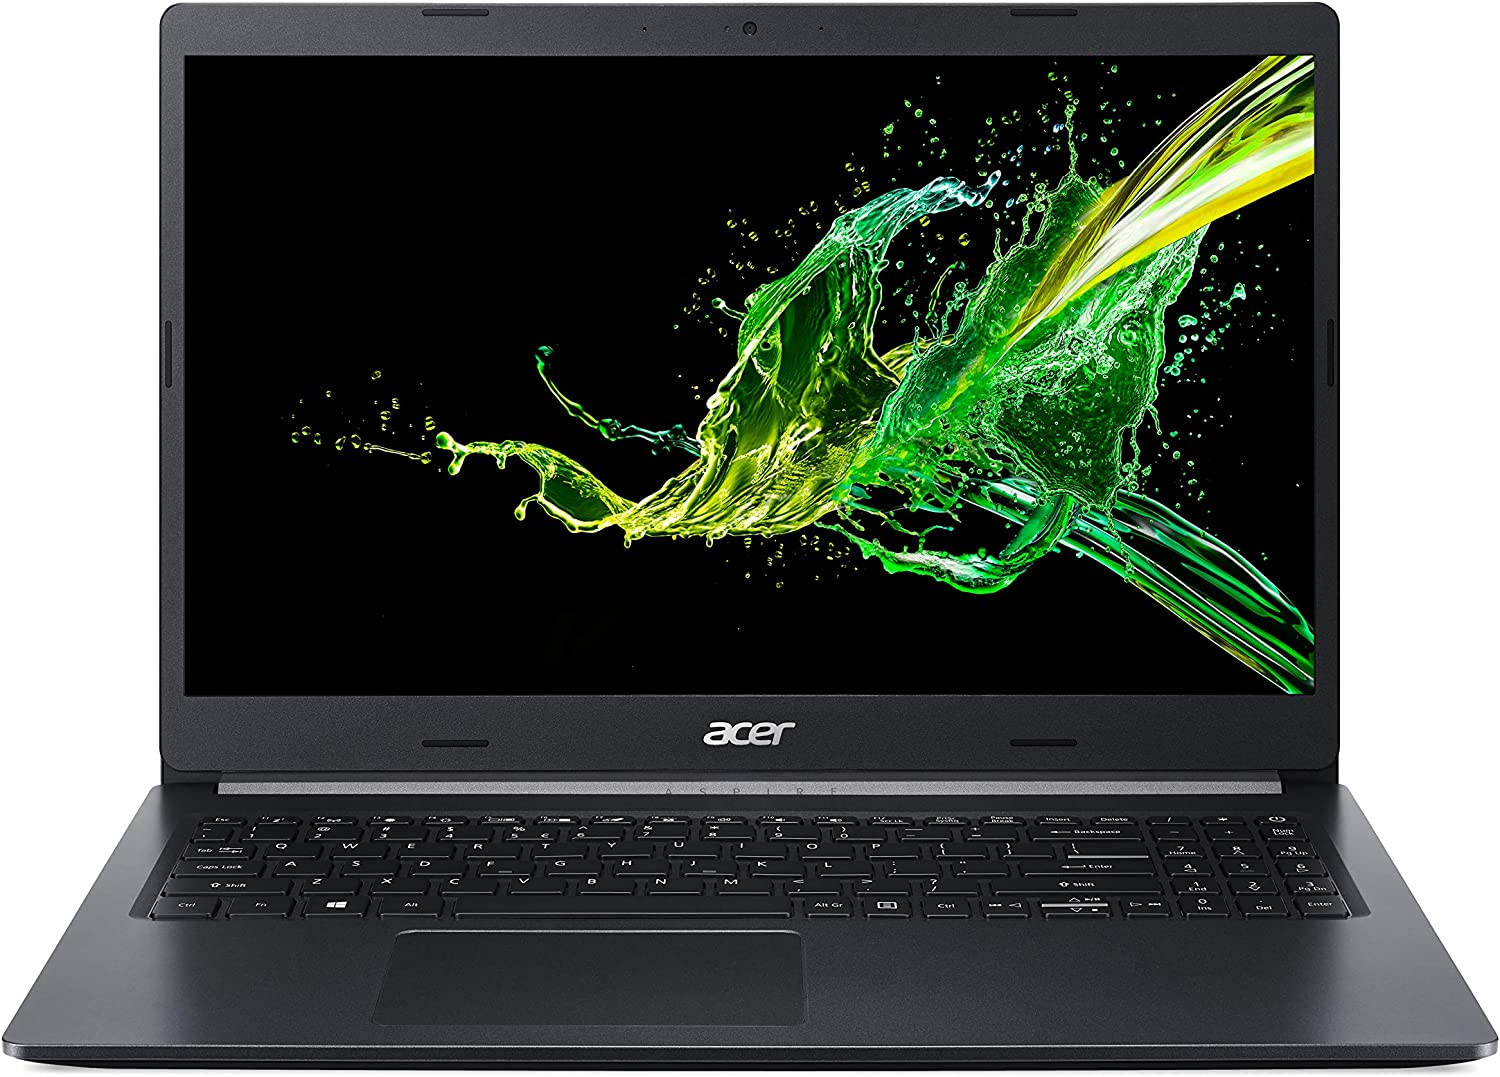 Acer Aspire 5 A515-54 15.6-inch Laptop image 1